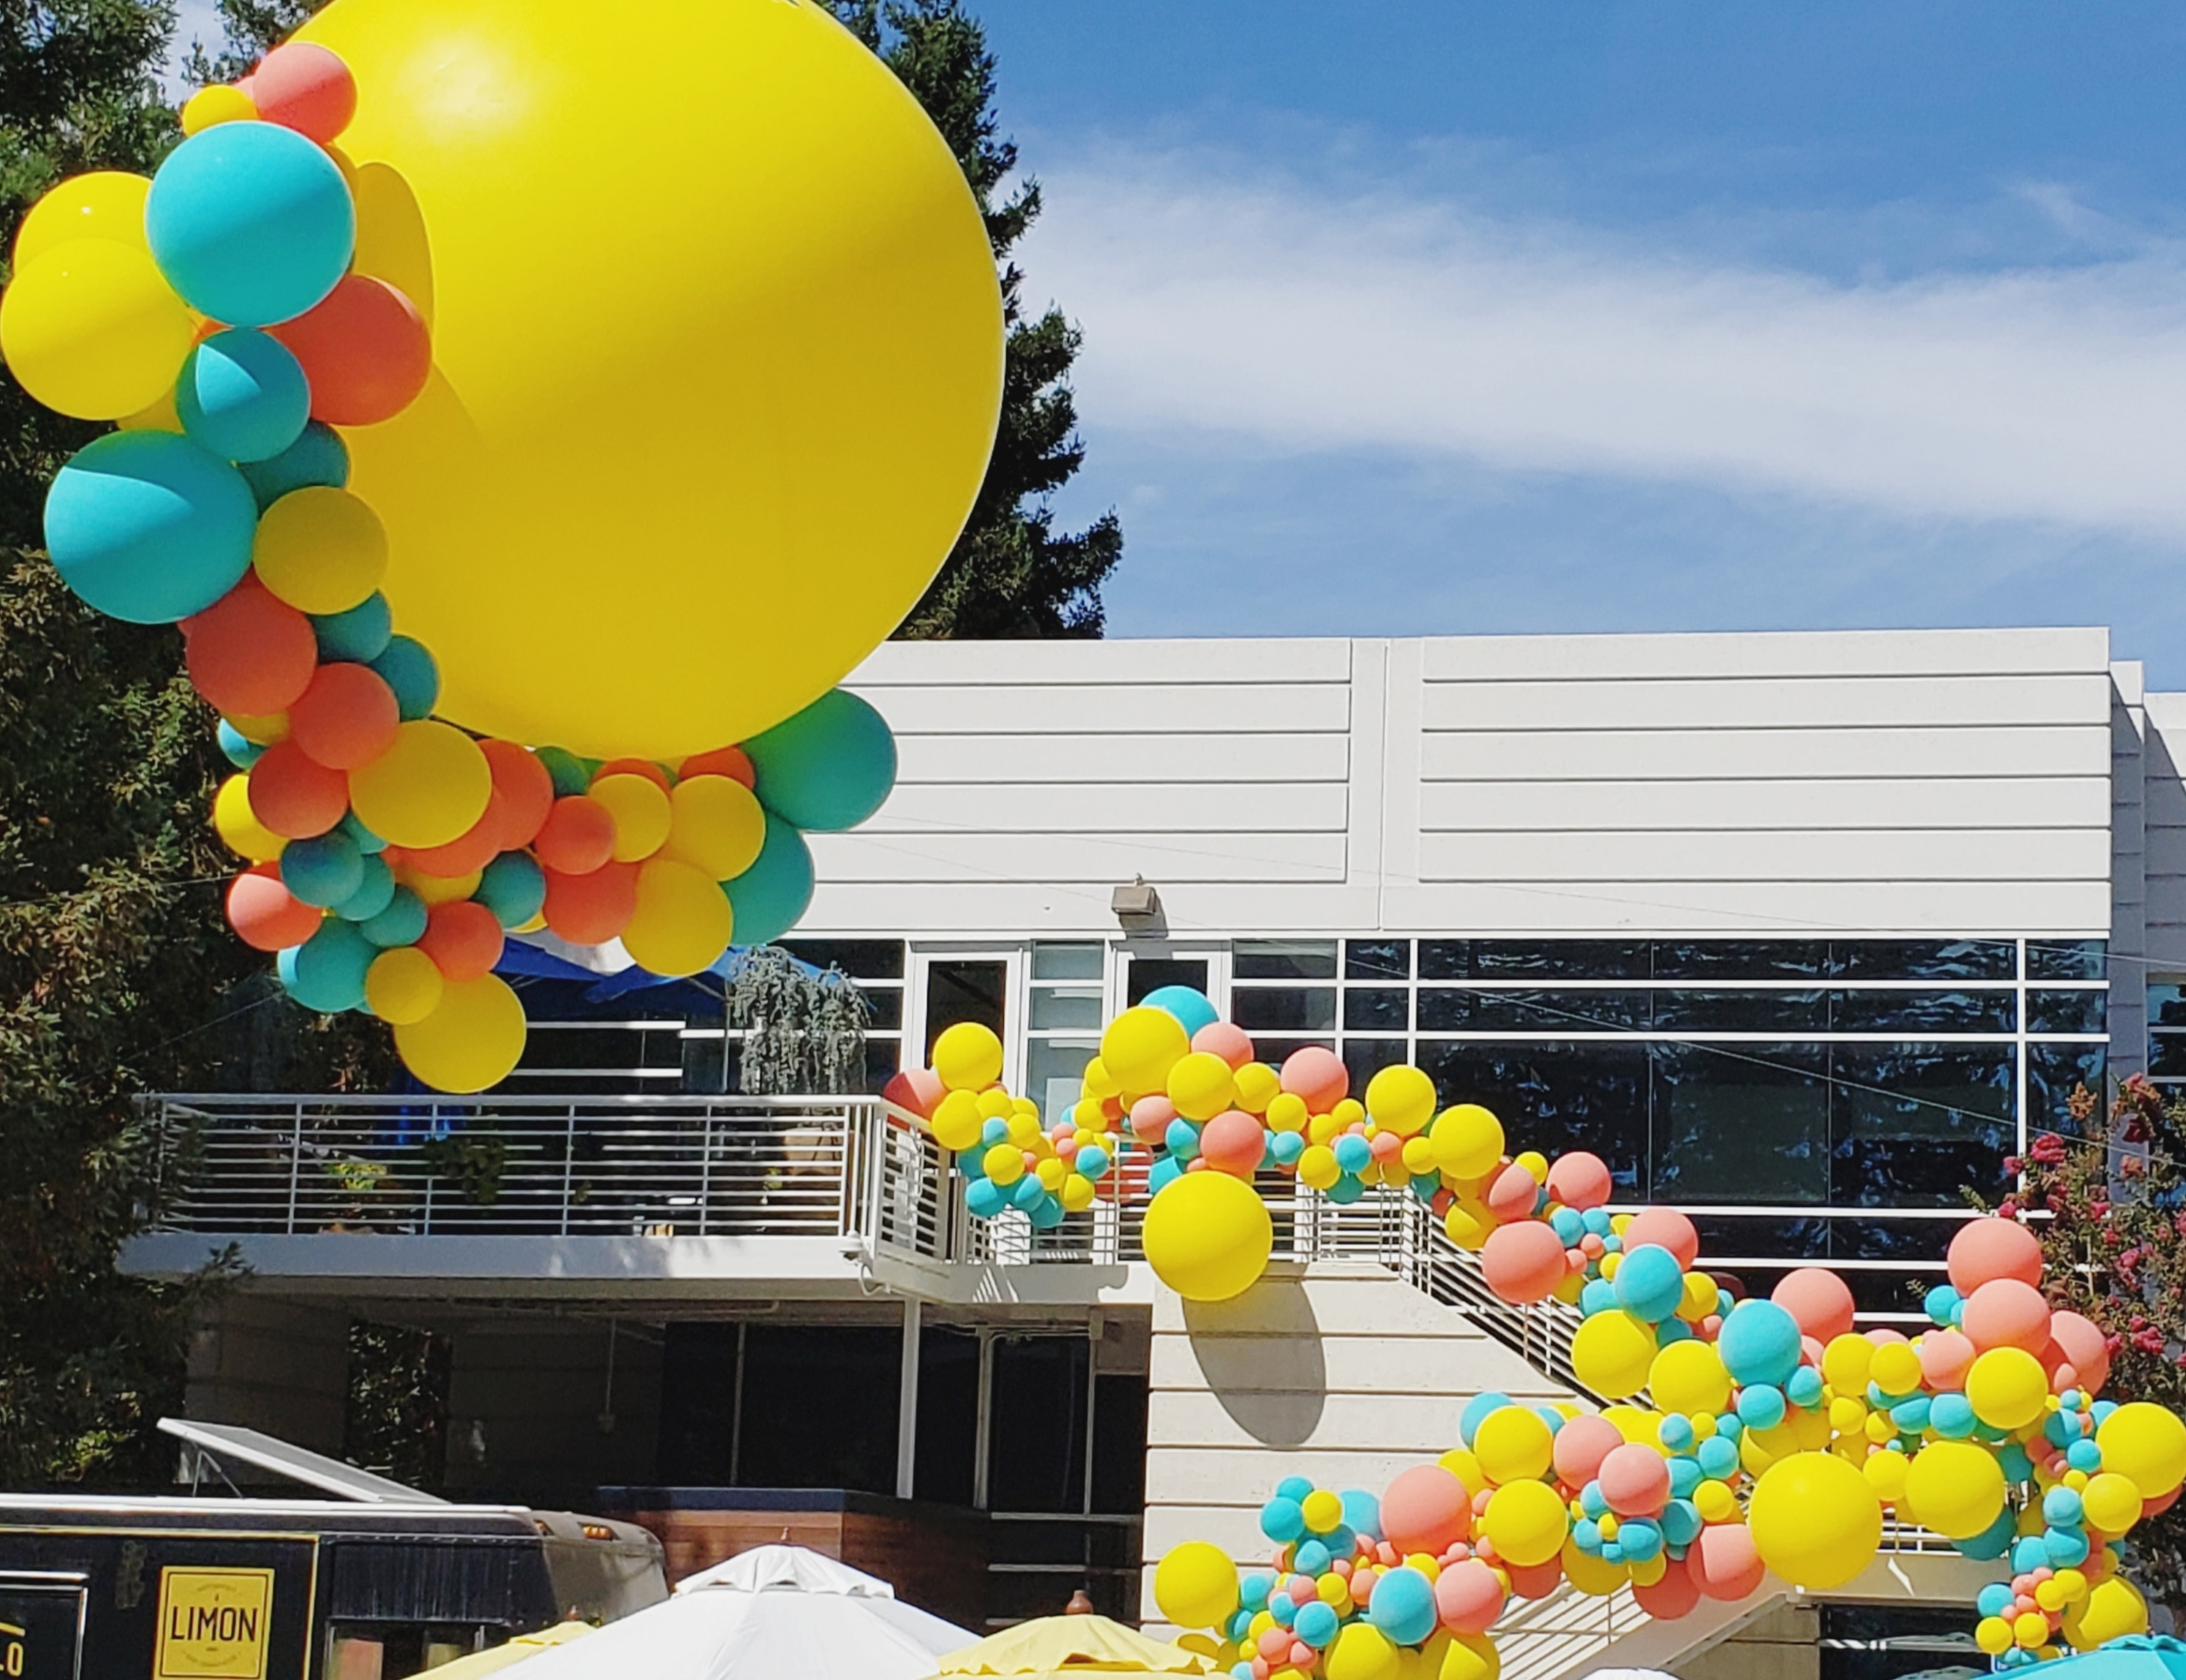 Google Ventures BBQ Organic Balloon Garland  Balloons Mountain View - Zim Balloons -.jpg